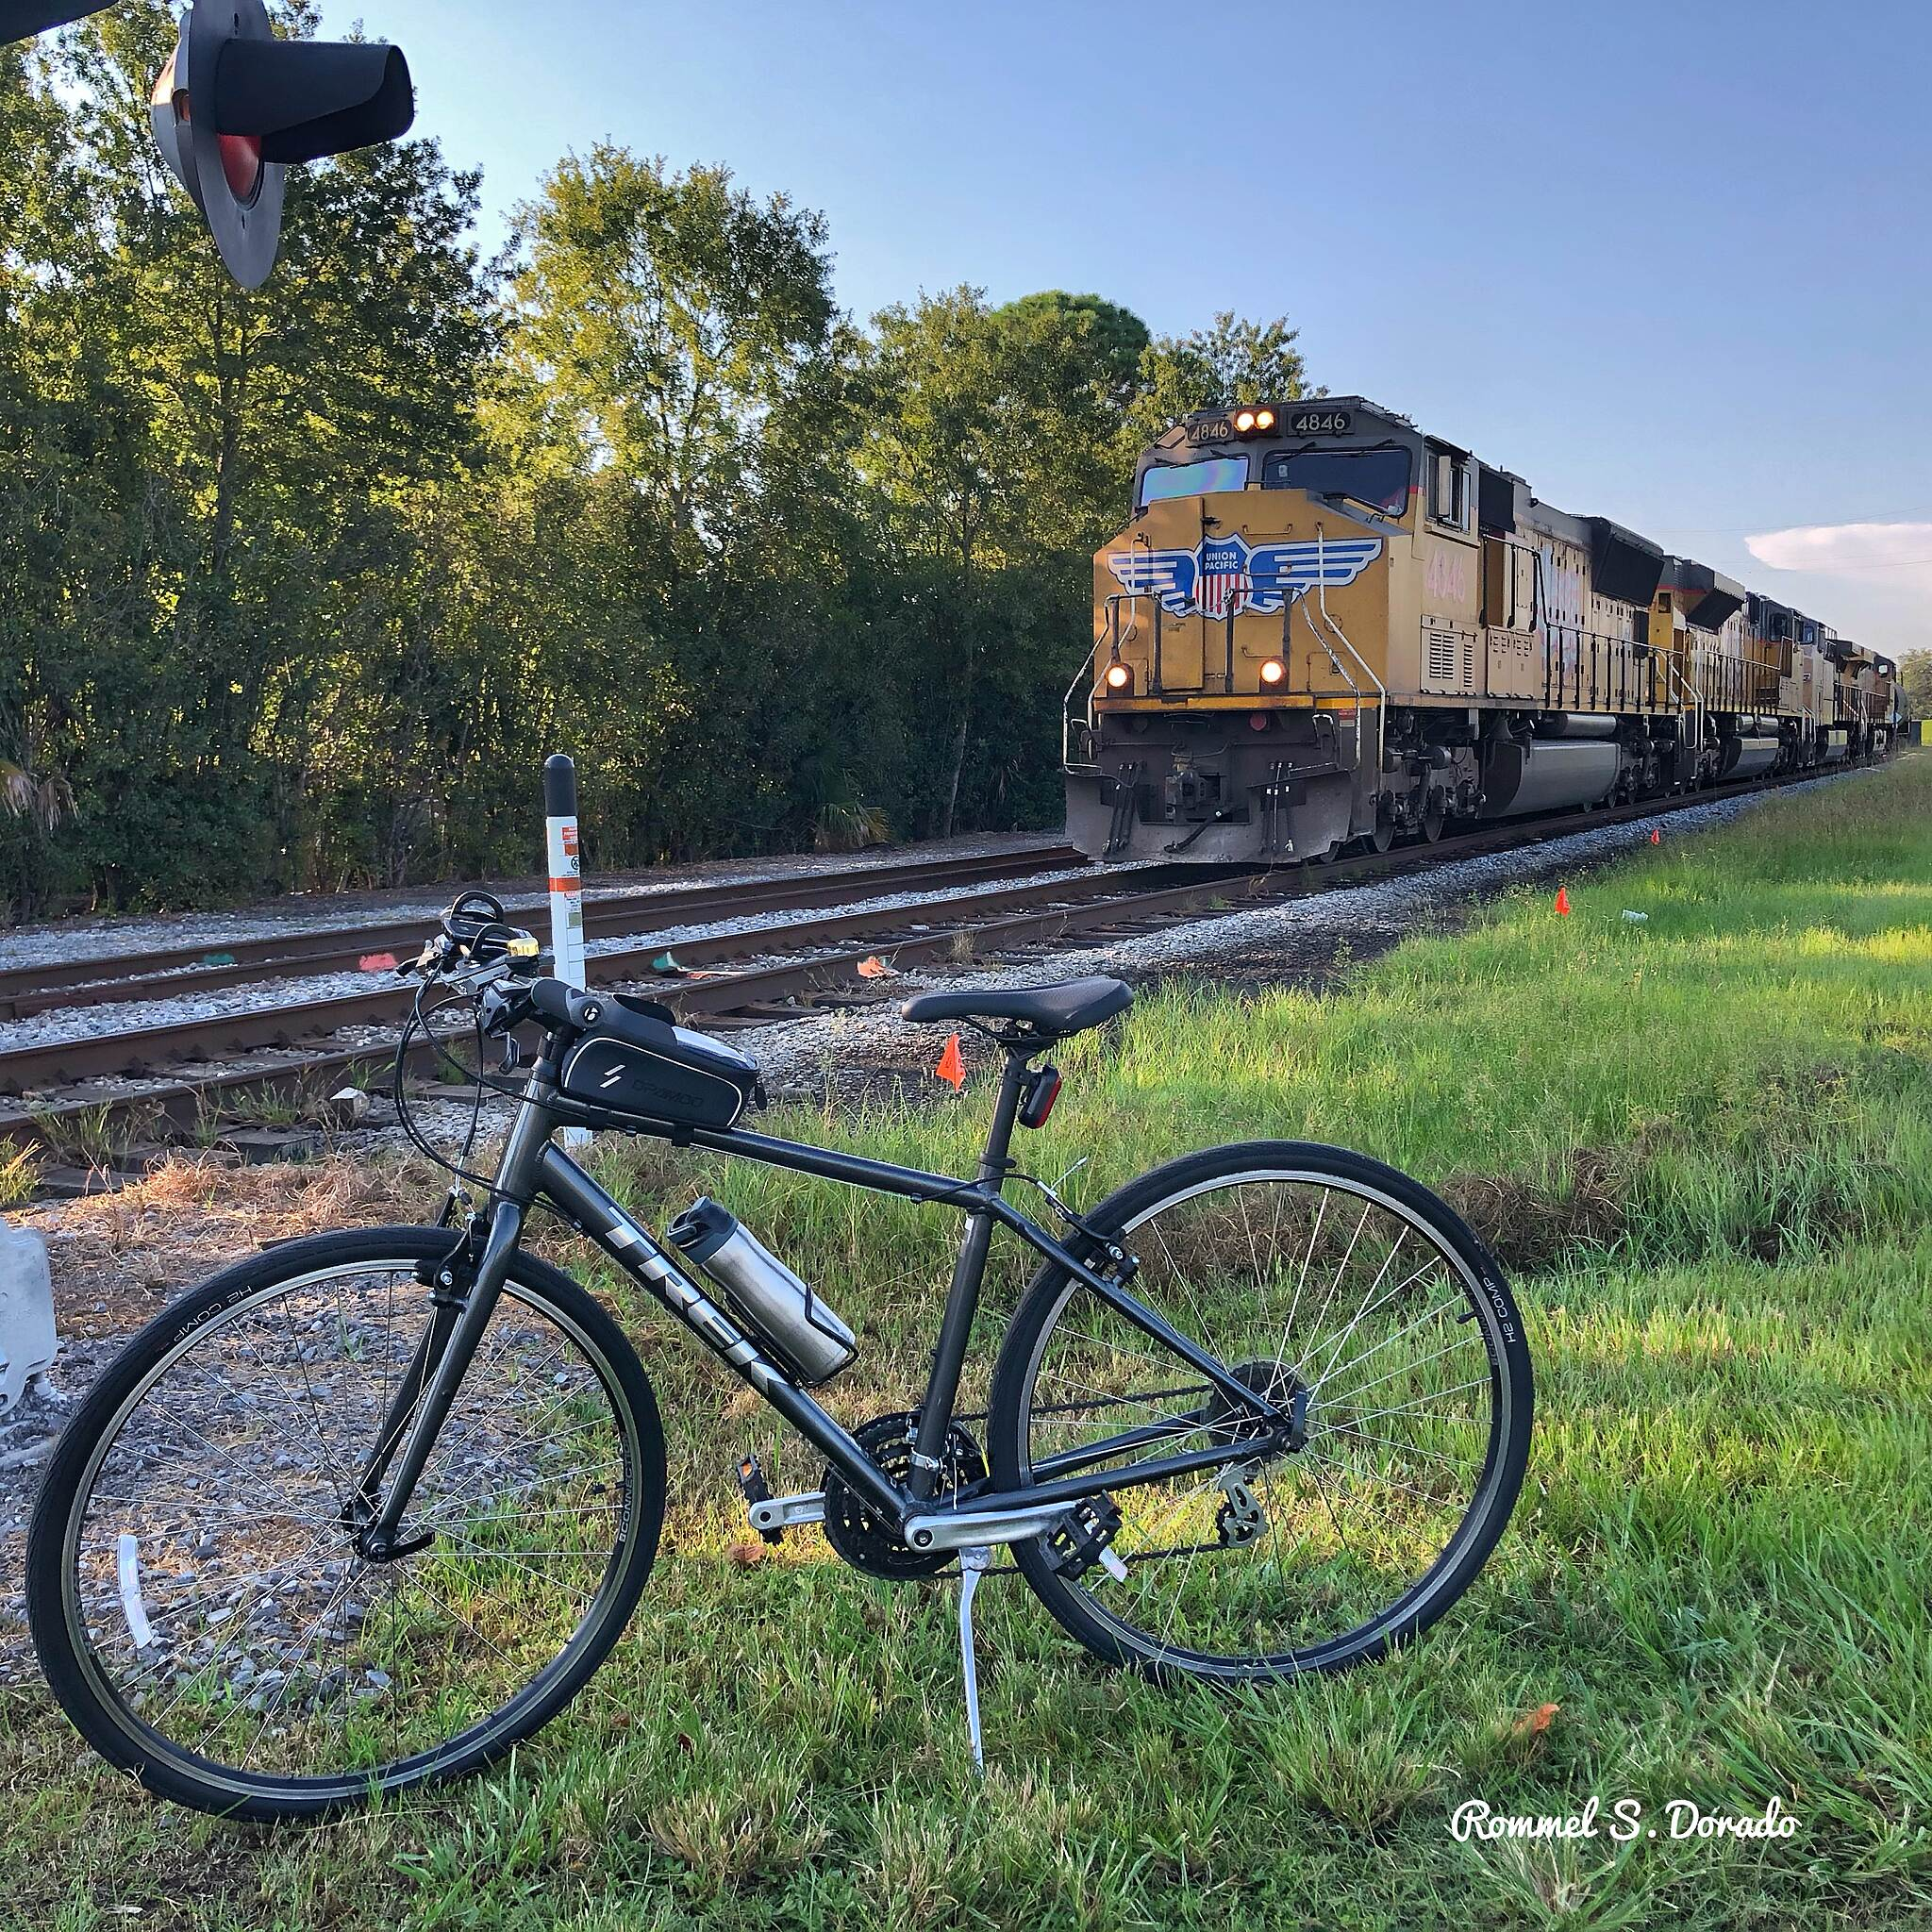 Mississippi River Trail (Louisiana) Bike, train, and bike trail This is at the end point of the trail by the Audubon Park (New Orleans).